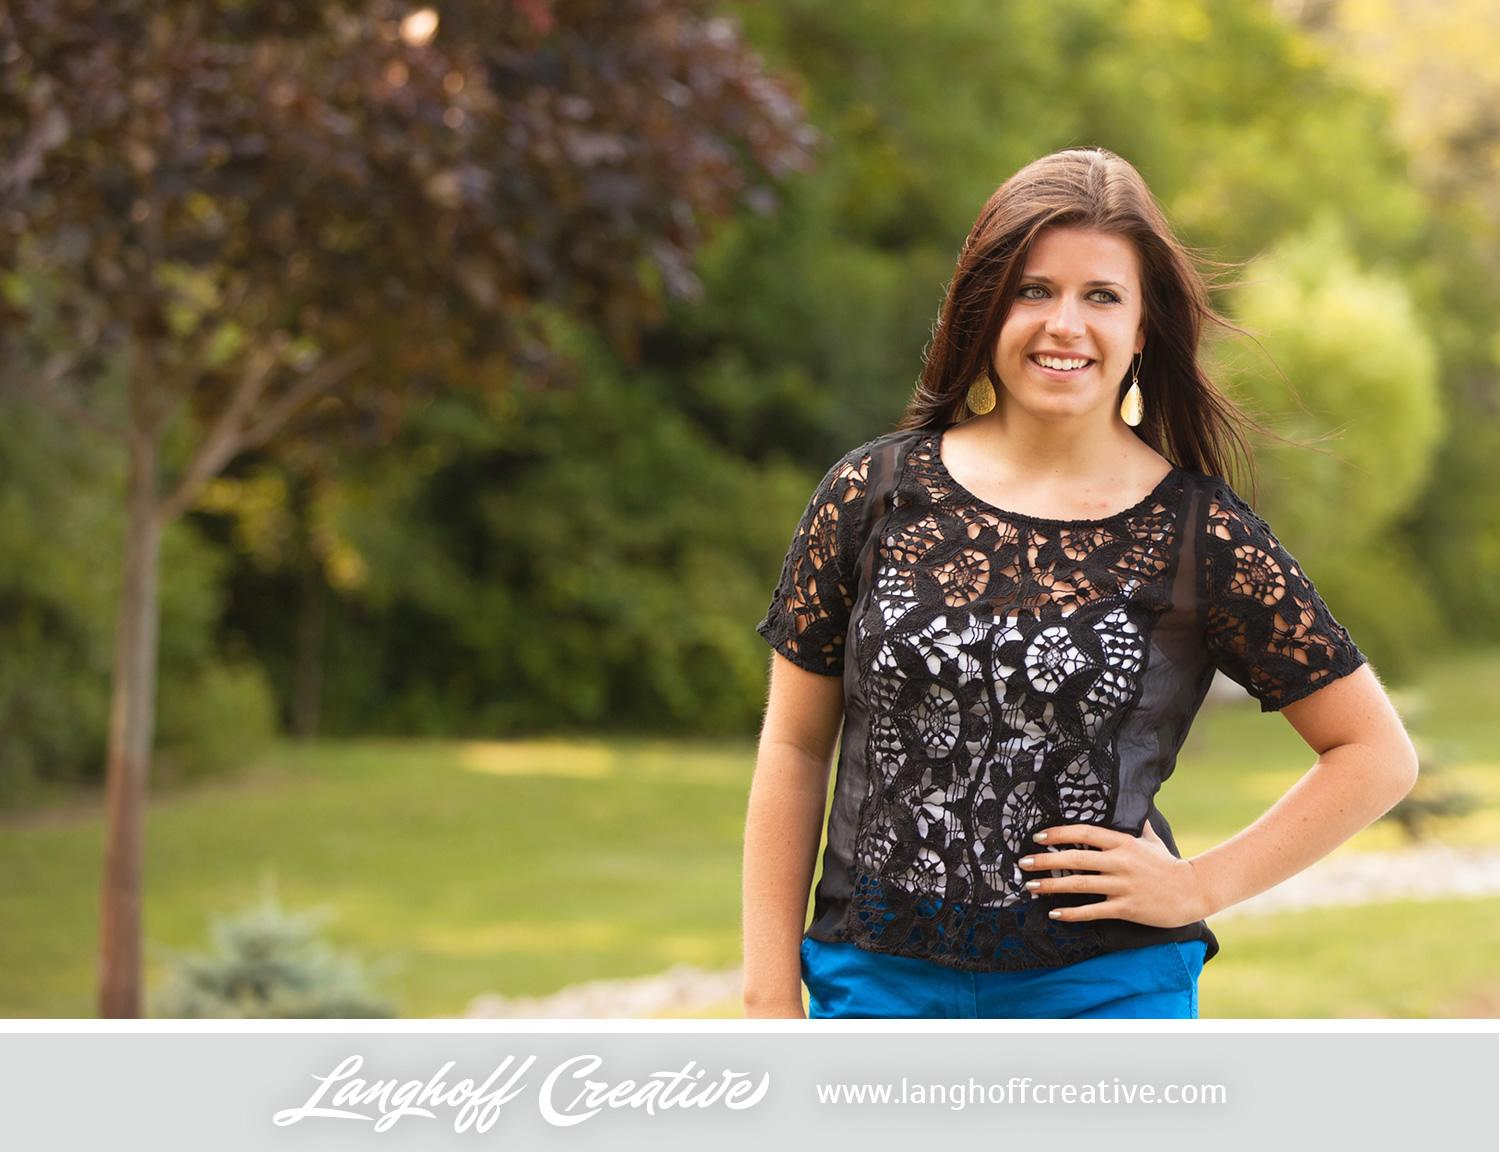 RacineSeniorPortraits-HighSchoolSeniorPhotography-LanghoffCreative-Natalie2014-classof2015-11-photo.jpg